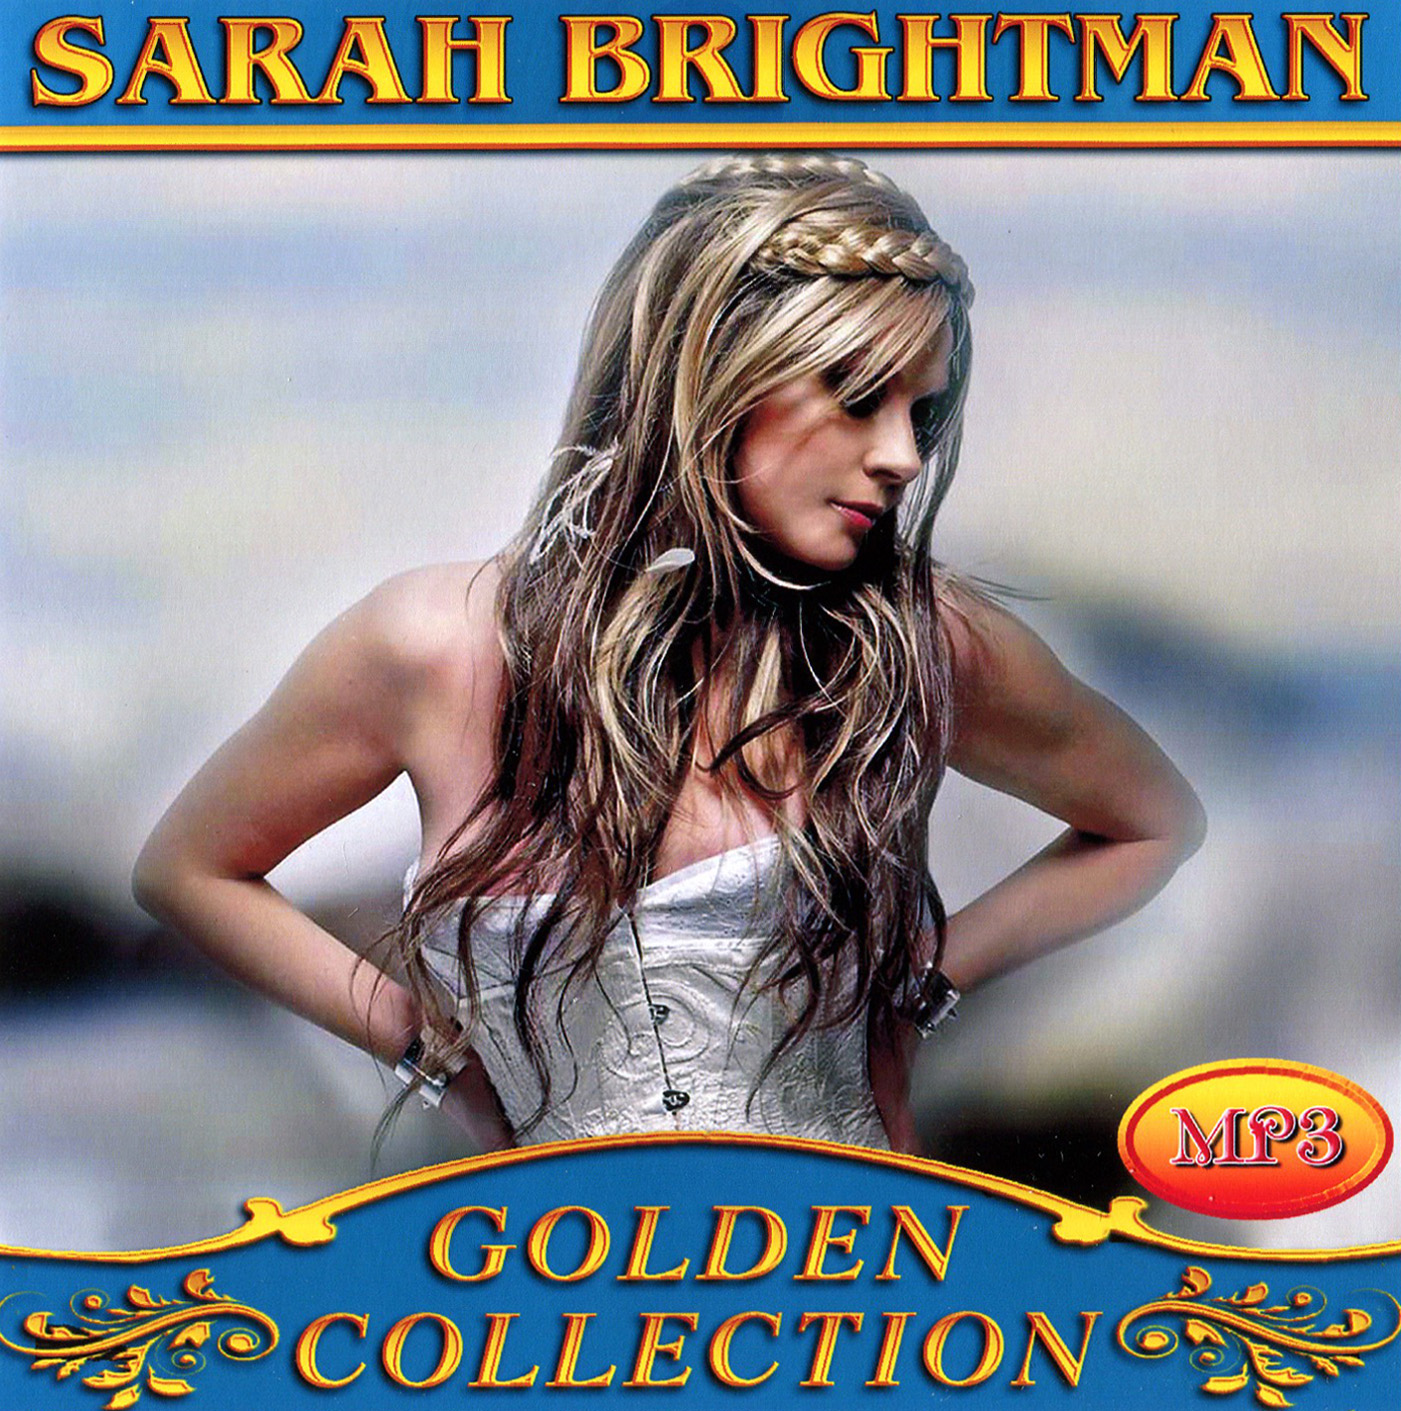 Sarah Brightman [mp3]